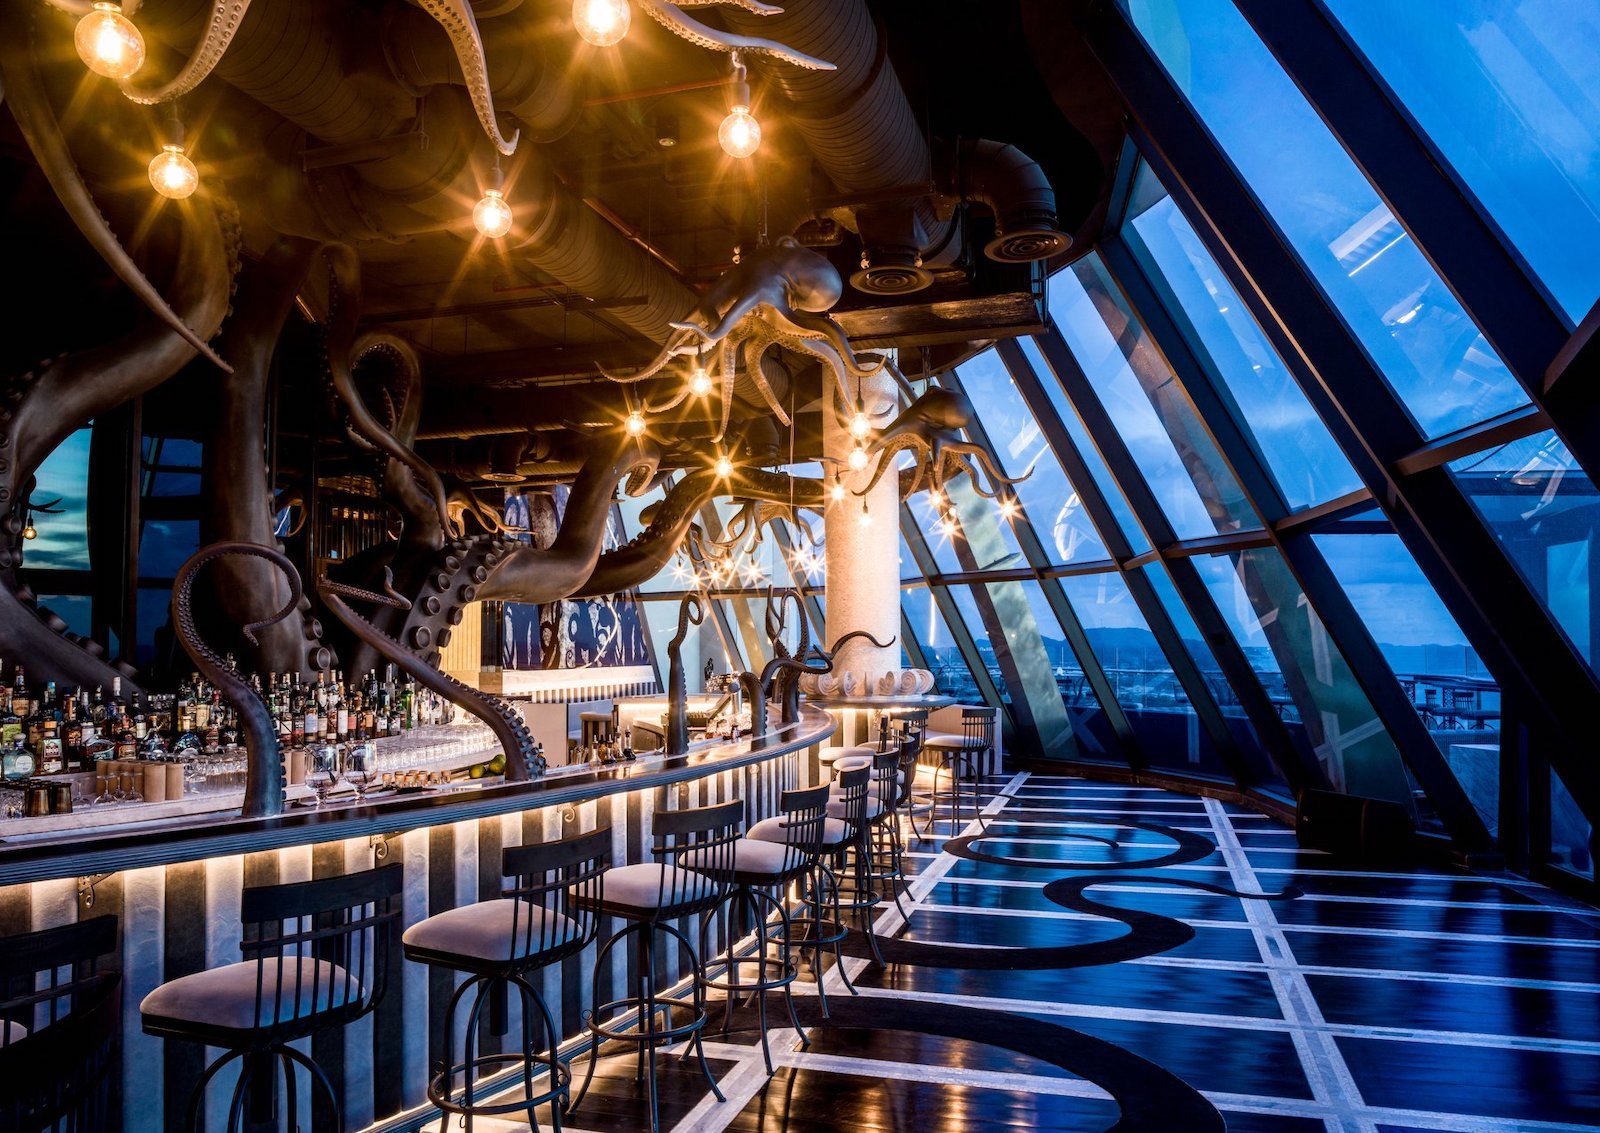 Image of the interior of INK 360 in Phu Quoc, Vietnam